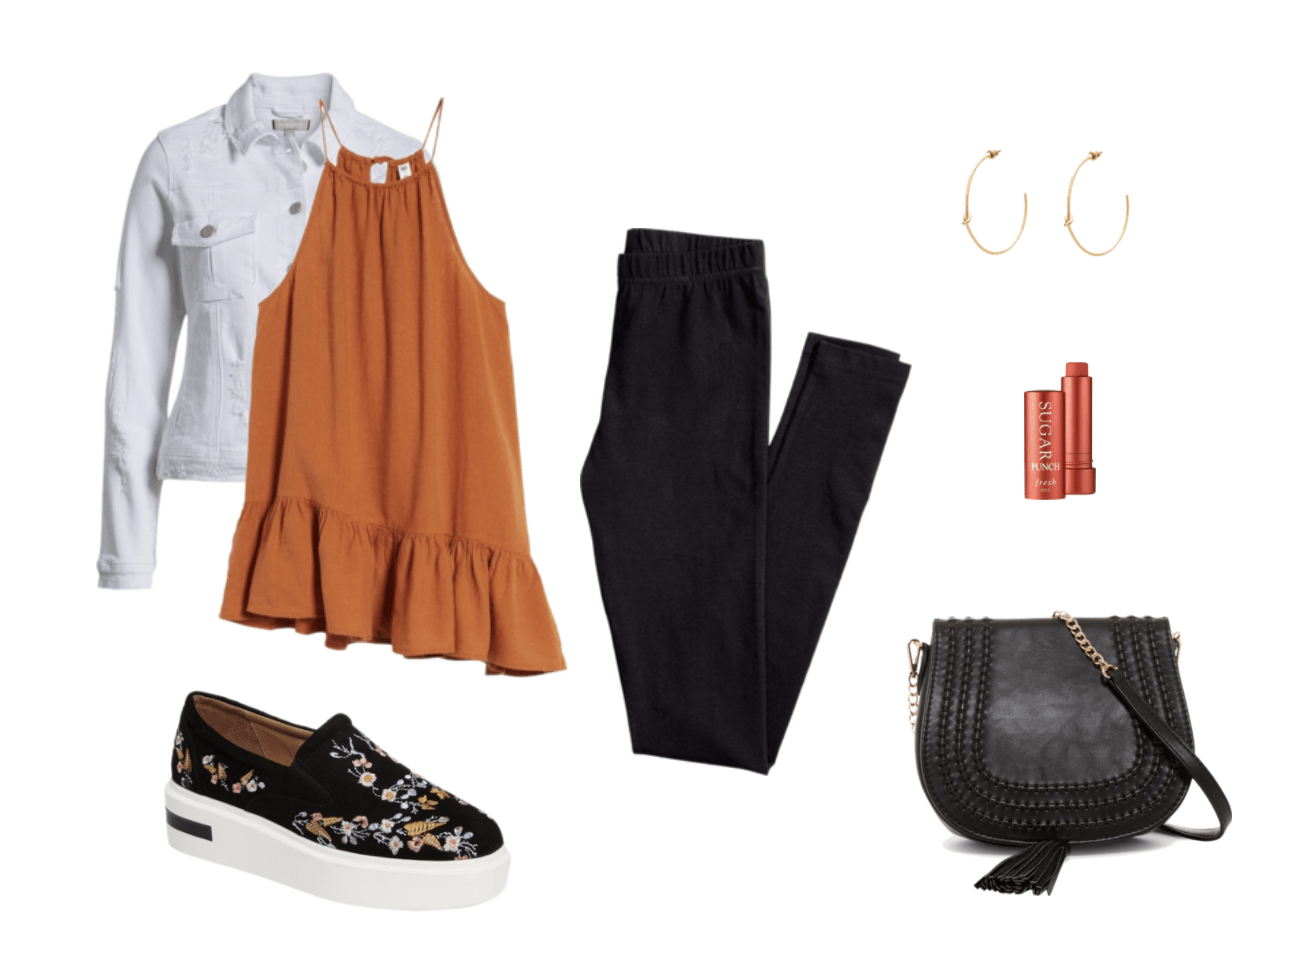 Platform sneakers outfit: Black skinny pants, orange ruffle top, white denim jacket, lip balm, hoop earrings